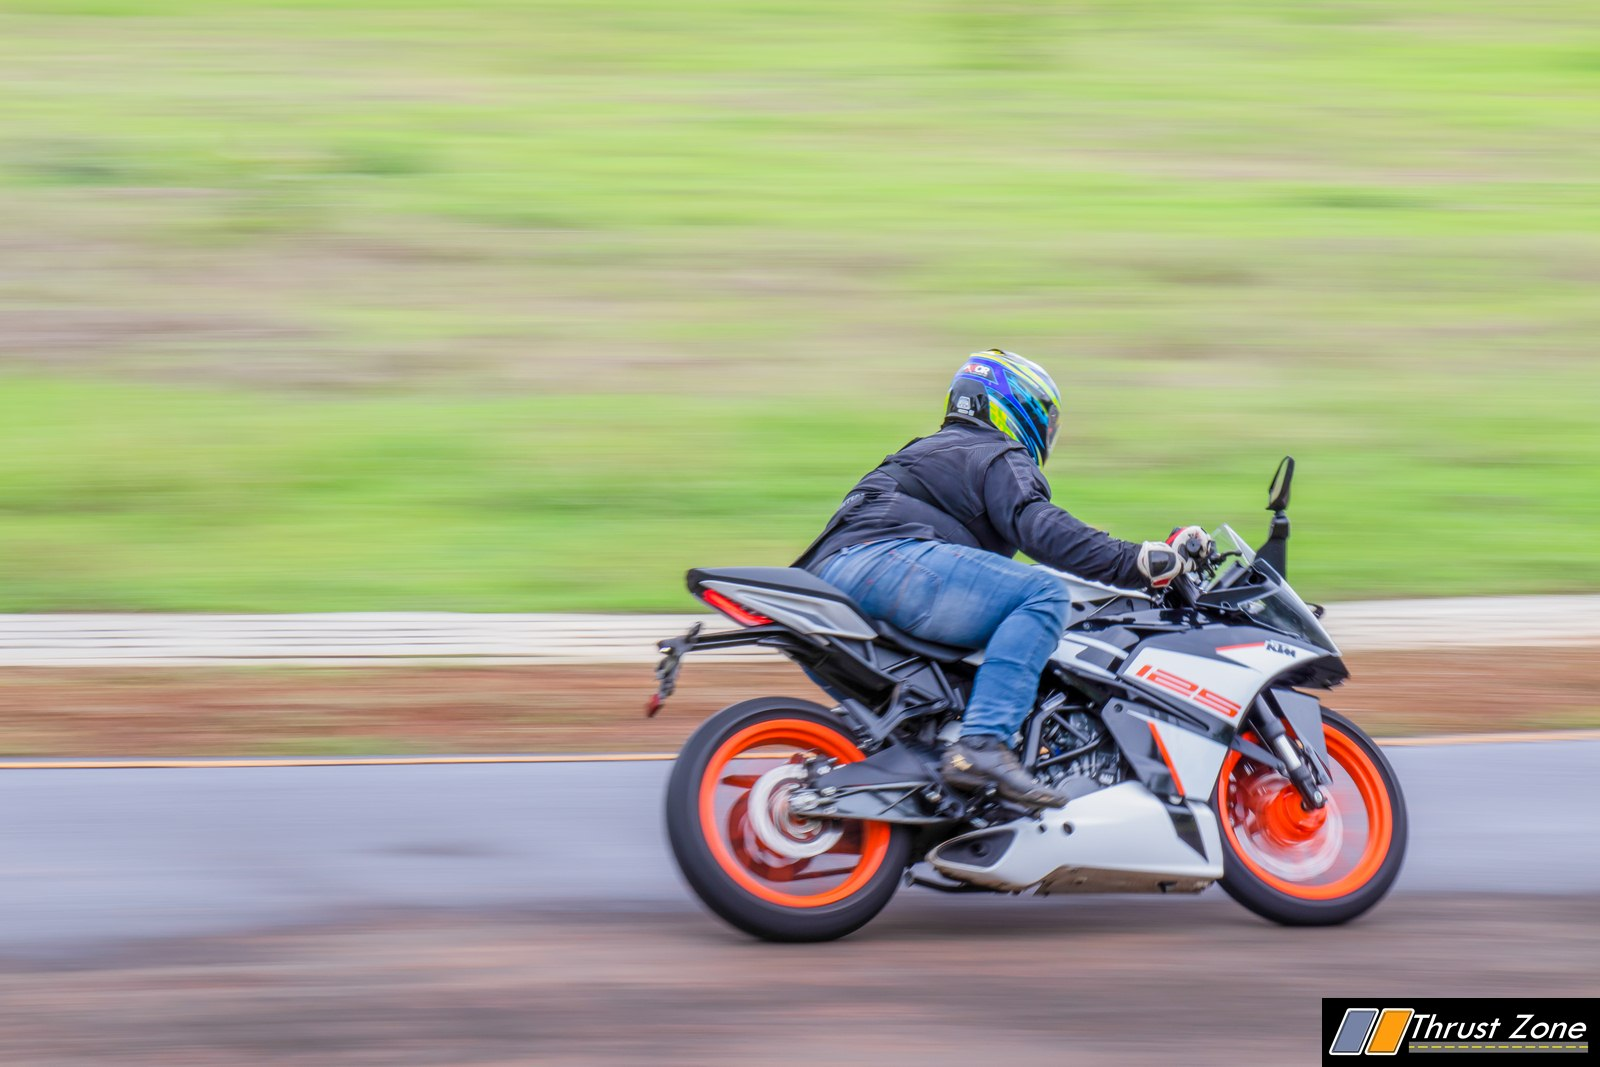 https://www.thrustzone.com/wp-content/uploads/2019/07/2019-KTM-RC-125-india-review-13.jpg